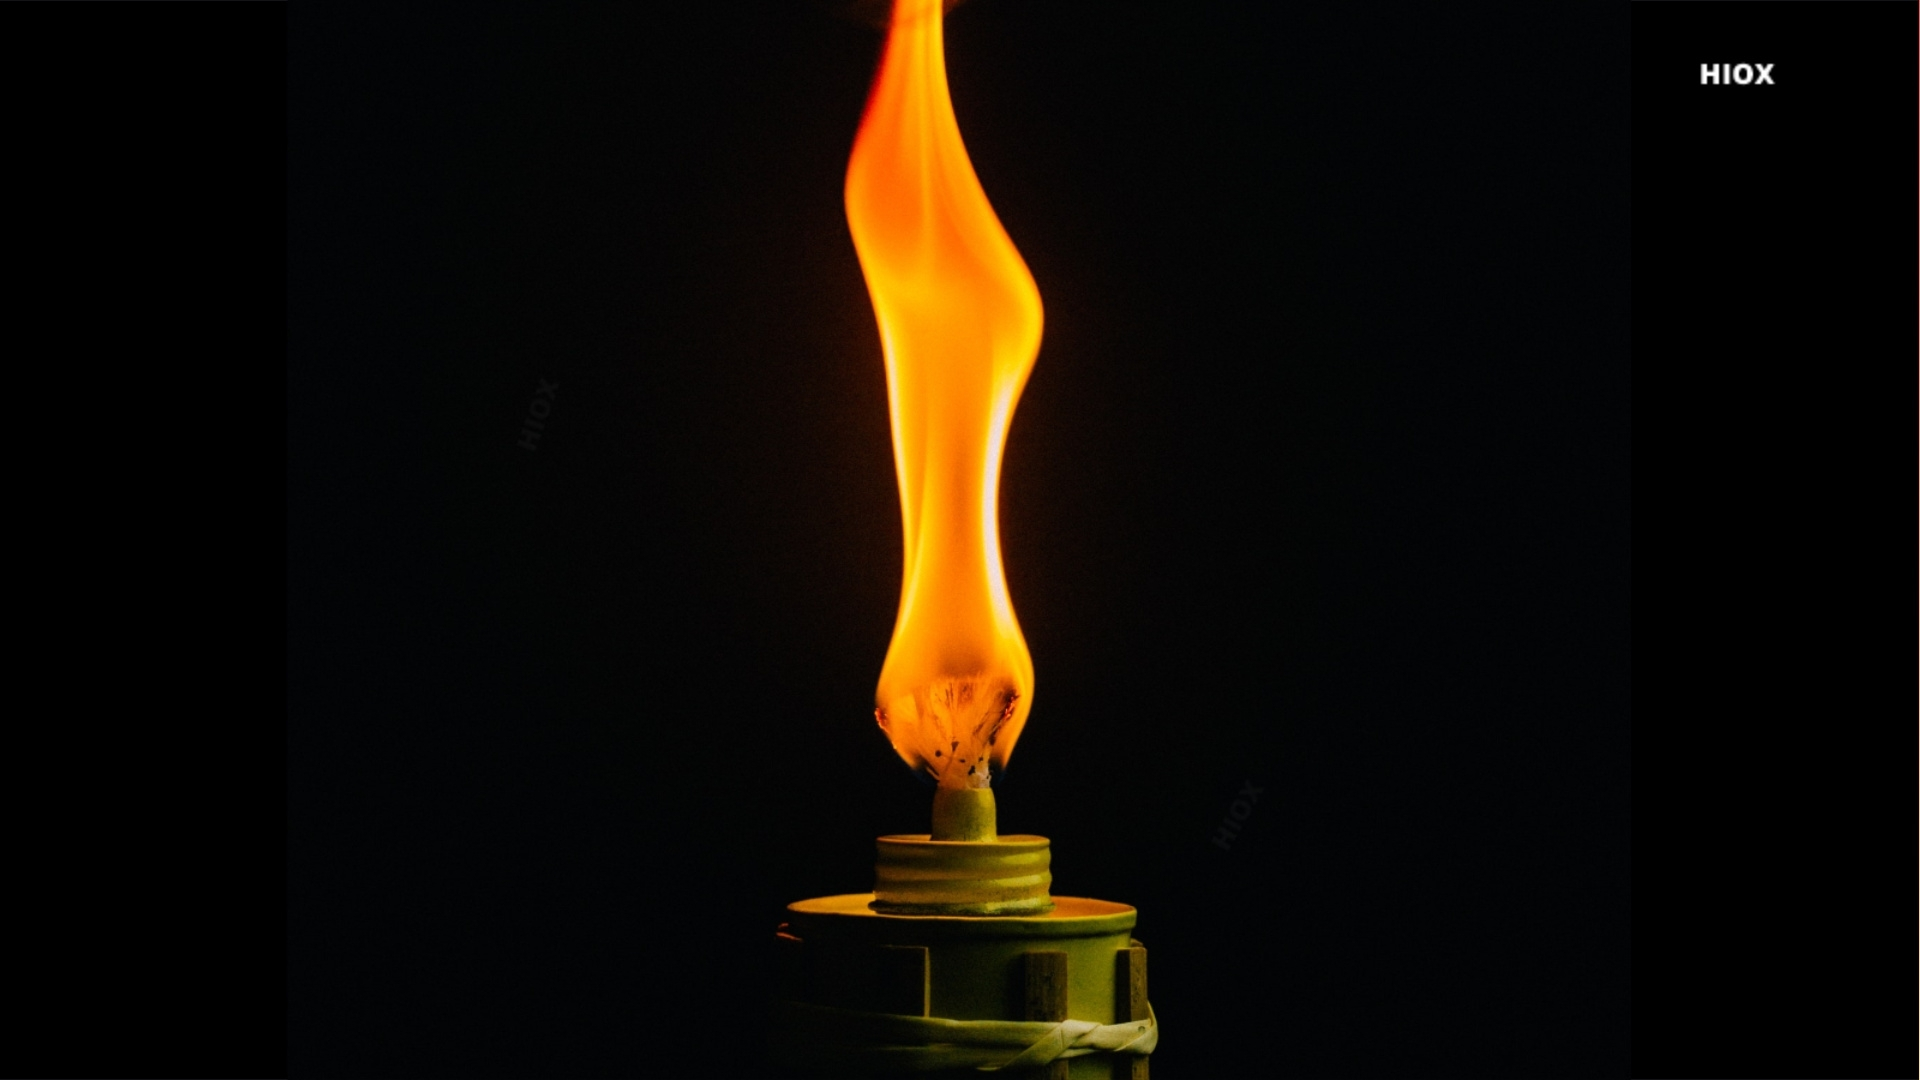 Kerosene Lamp Wallpaper Image